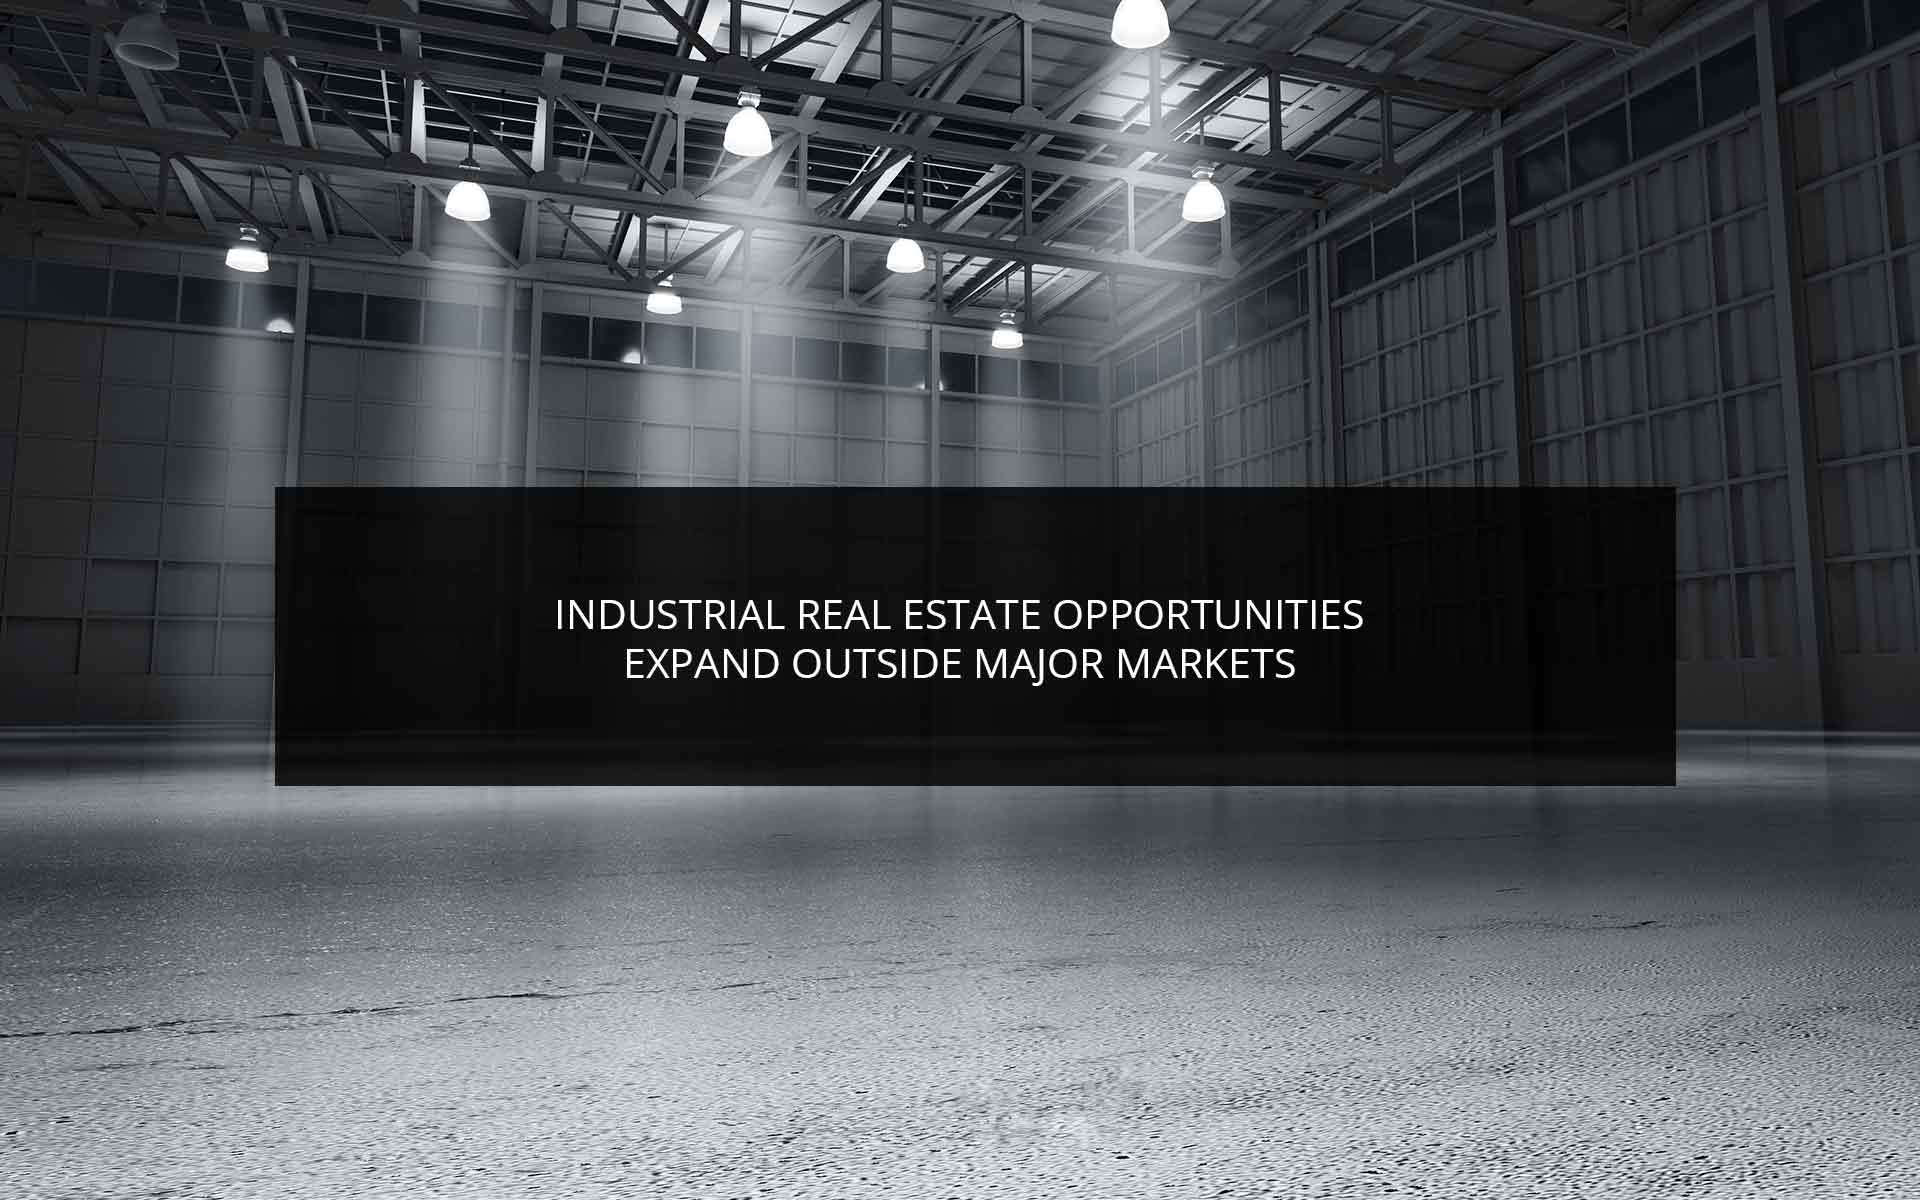 Industrial Real Estate Opportunities Expand Outside Major Markets